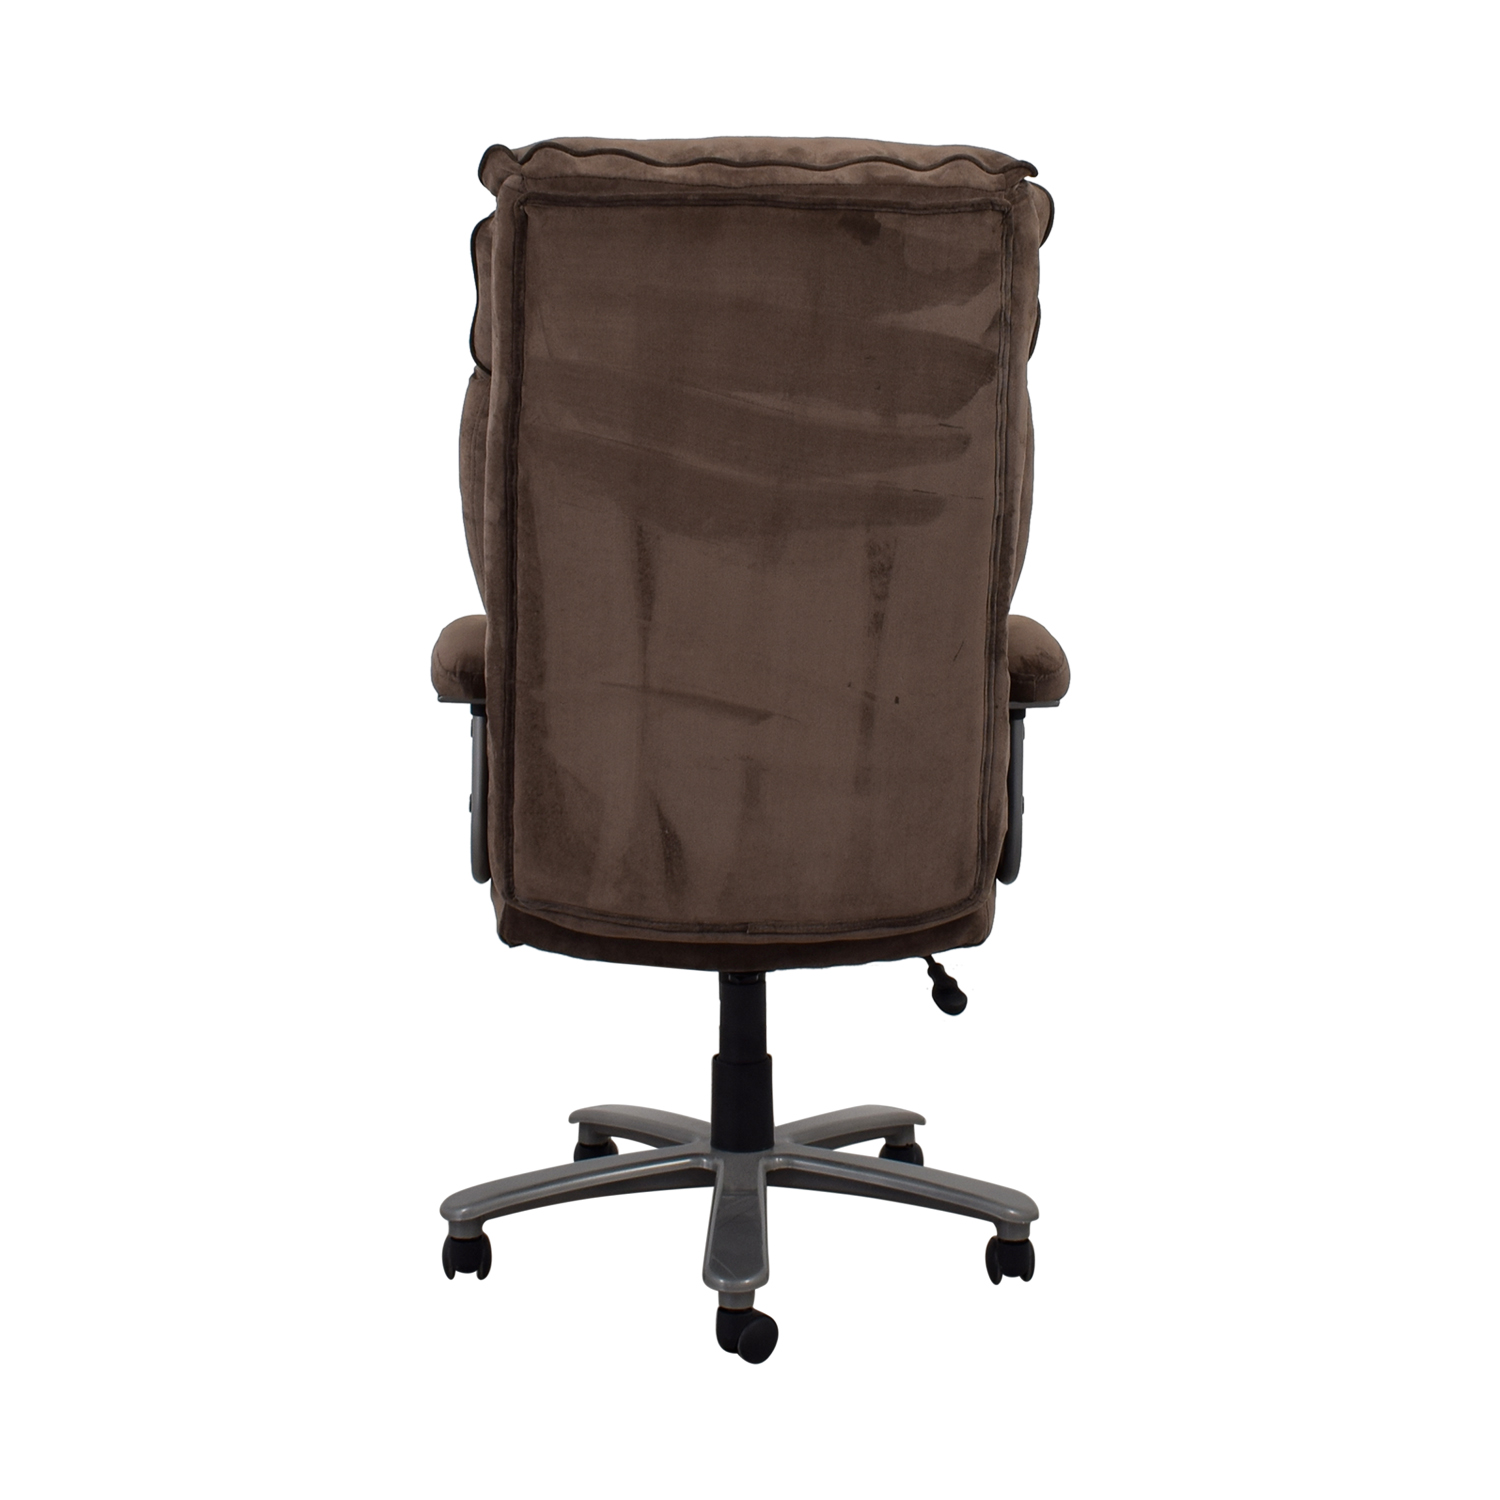 Office Depot Office Depot Grey Office Chair second hand